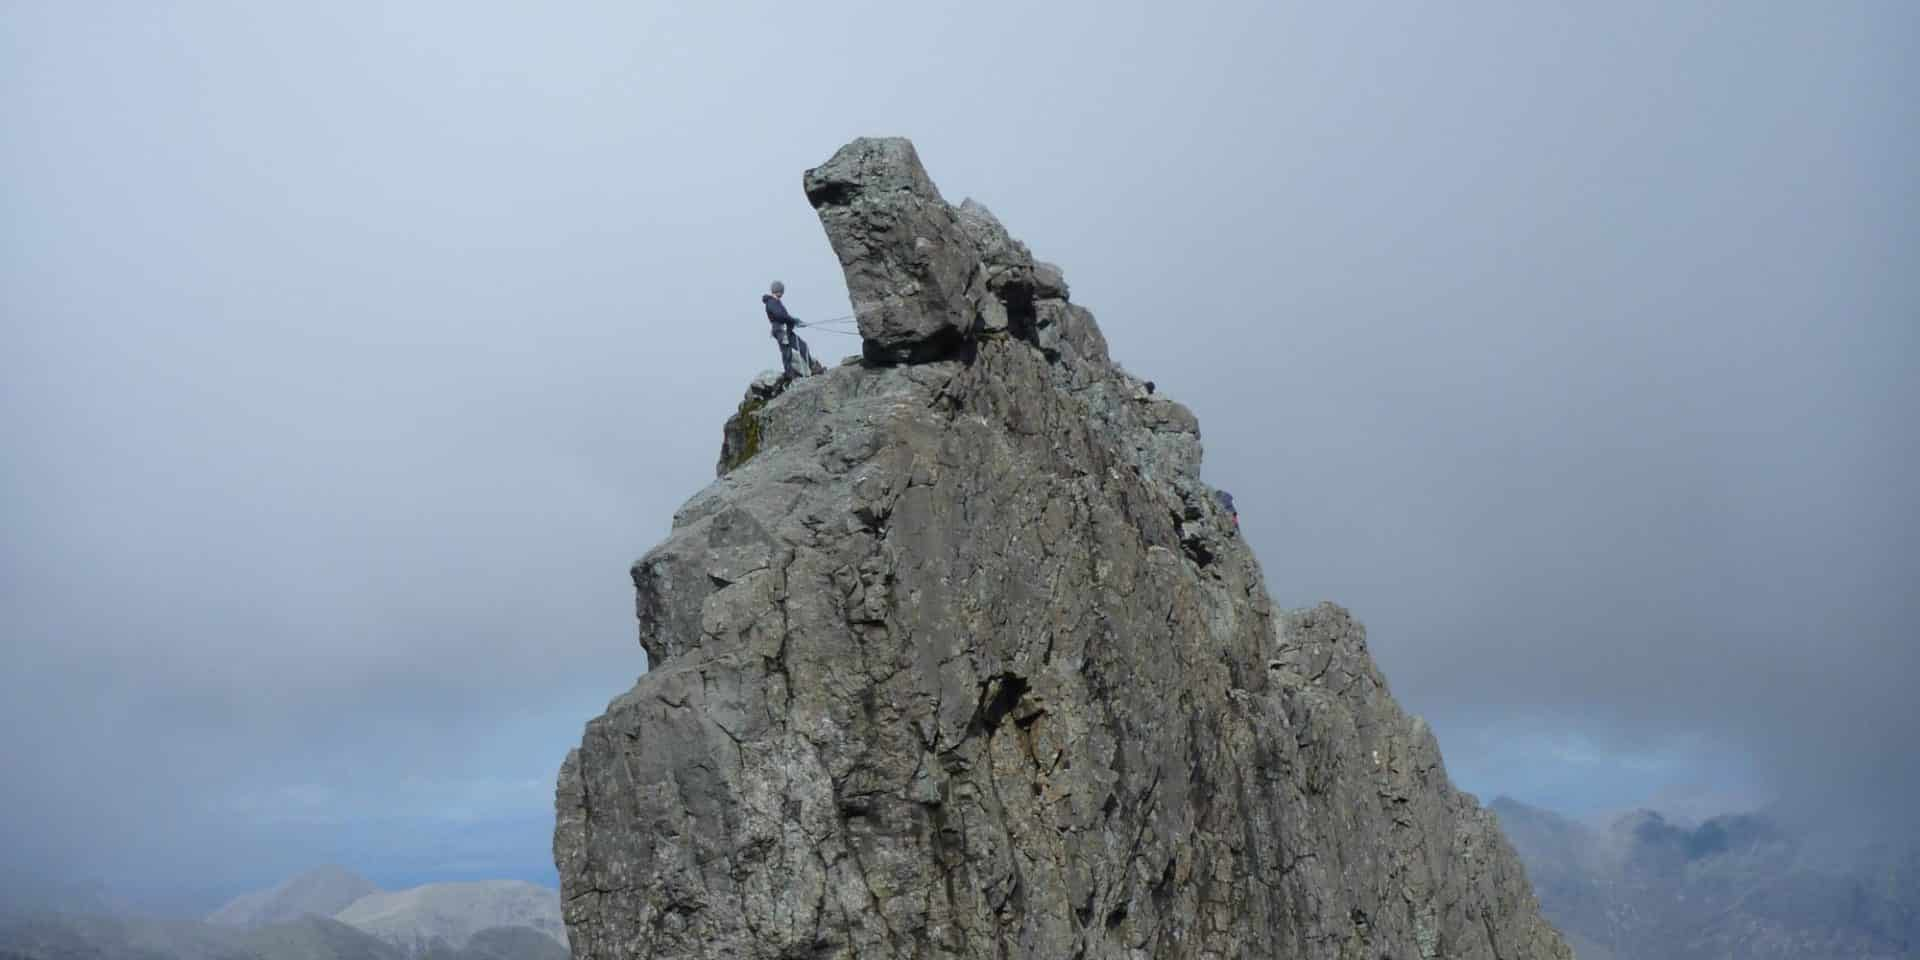 Ascent of the In Pinn on Skye Island